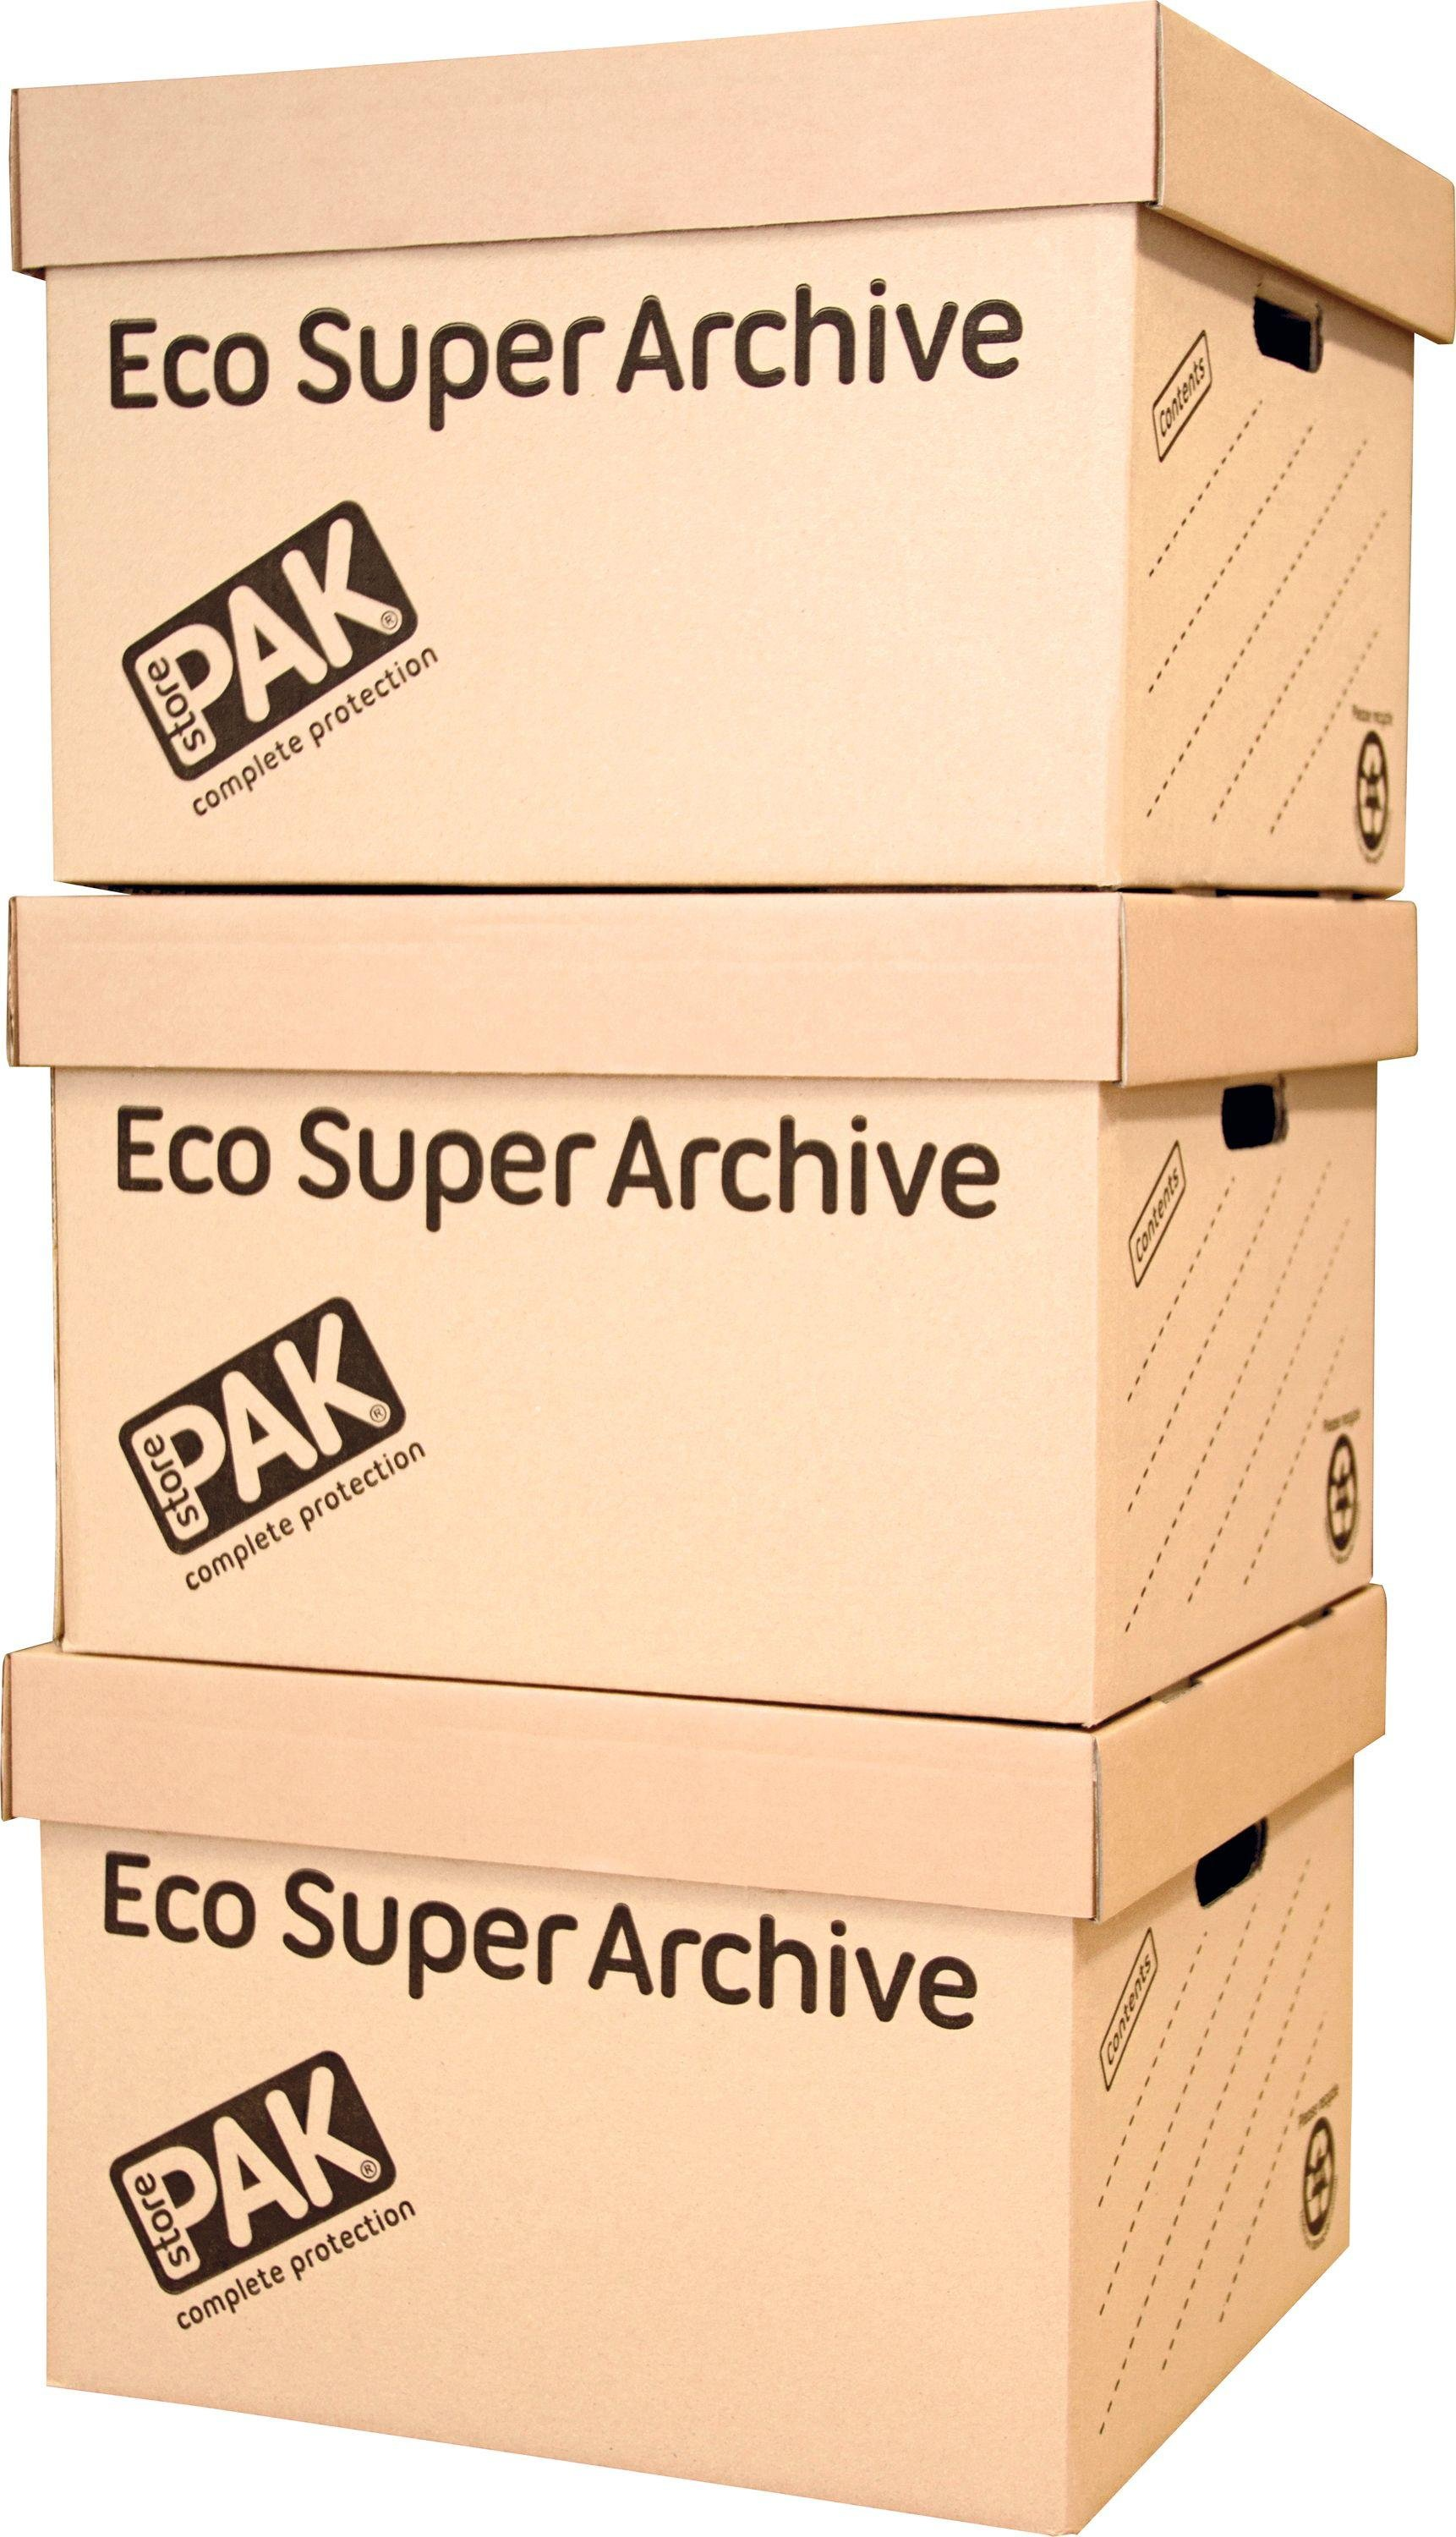 Image of StorePAK Ecohome Super Archive Storage Boxes - Set of 3